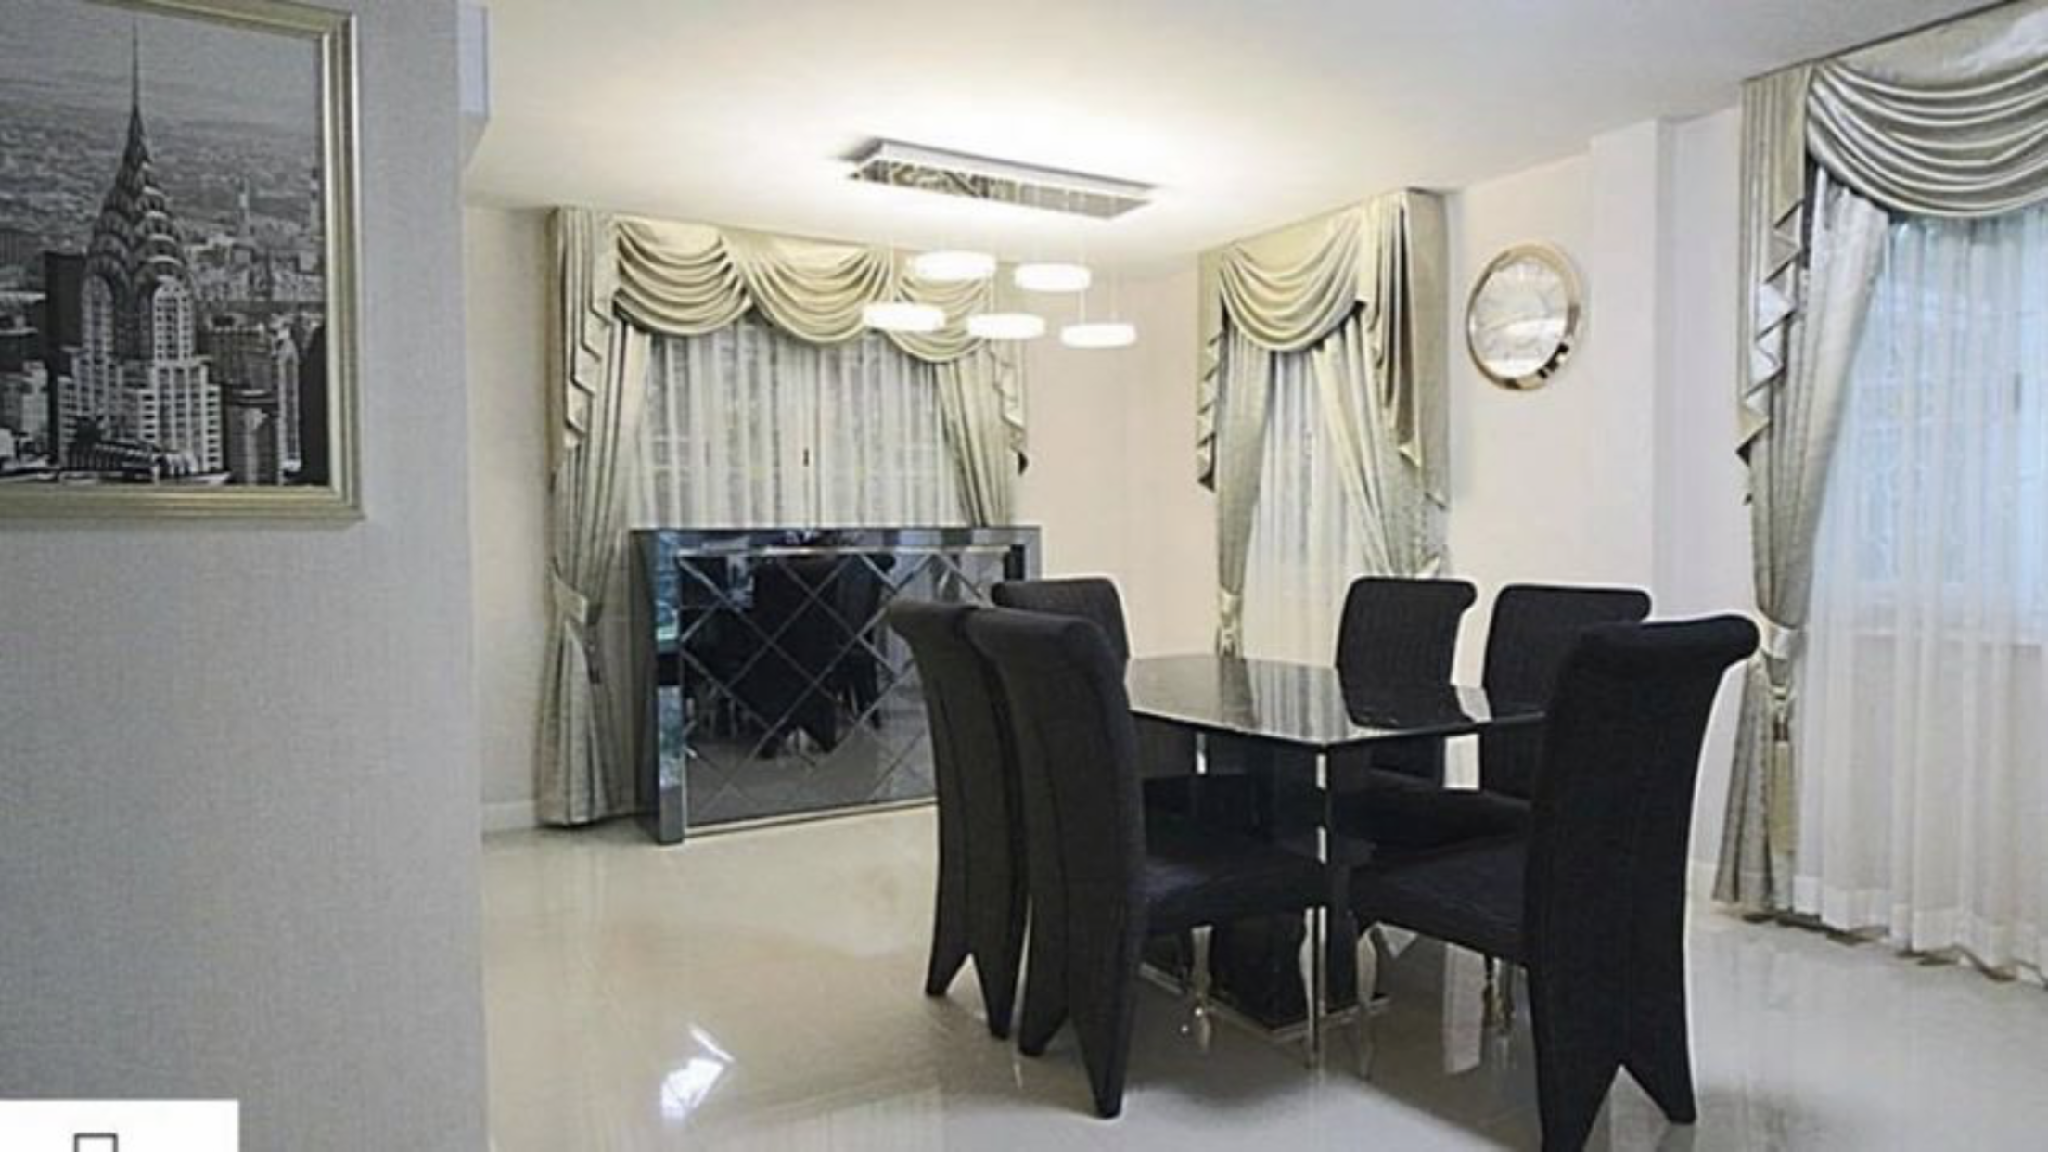 Experience A Peak Of Luxury In This Spacious Home